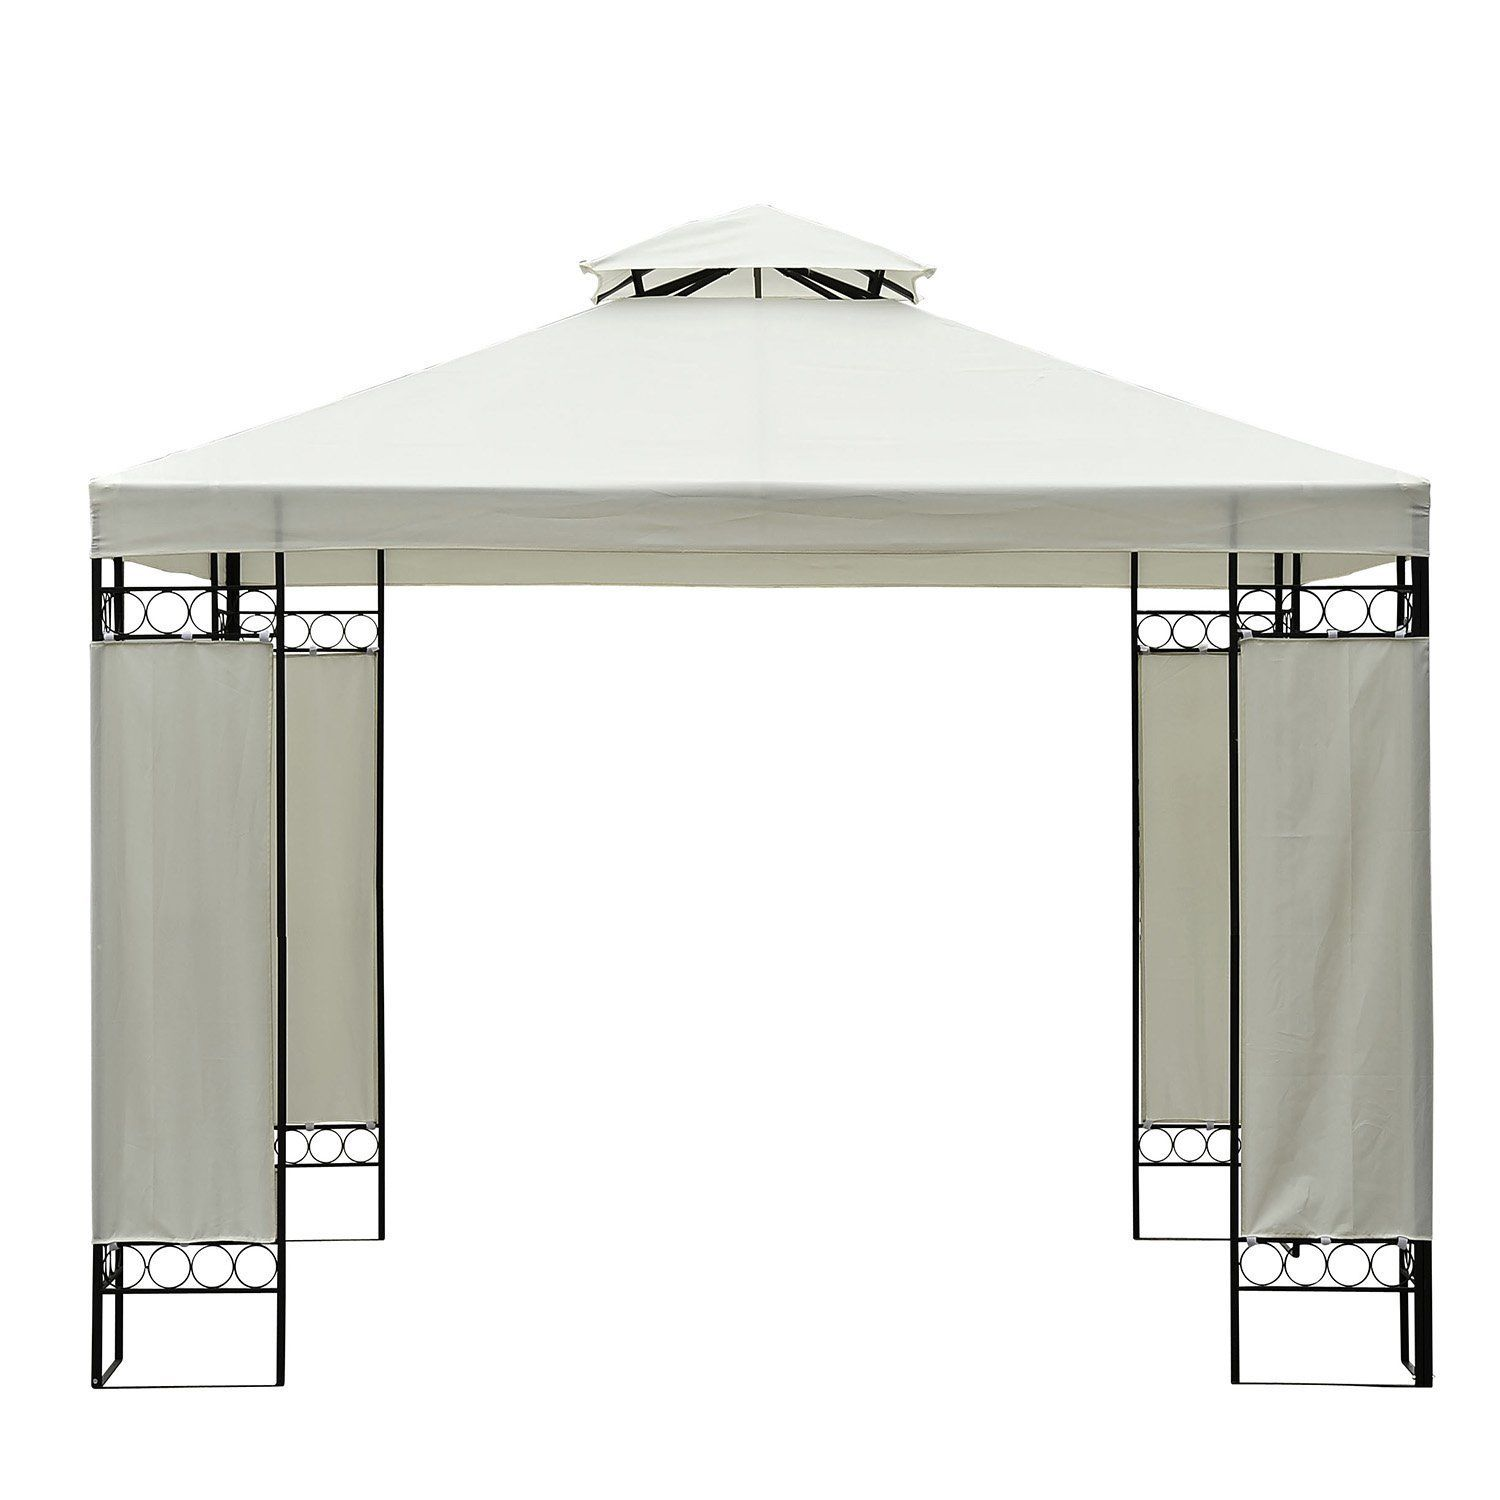 10-x-10-039-Double-Tier-Replacement-Canopy-Top-Patio-Pavilion-Gazebo-Sunshade-Cover miniature 4